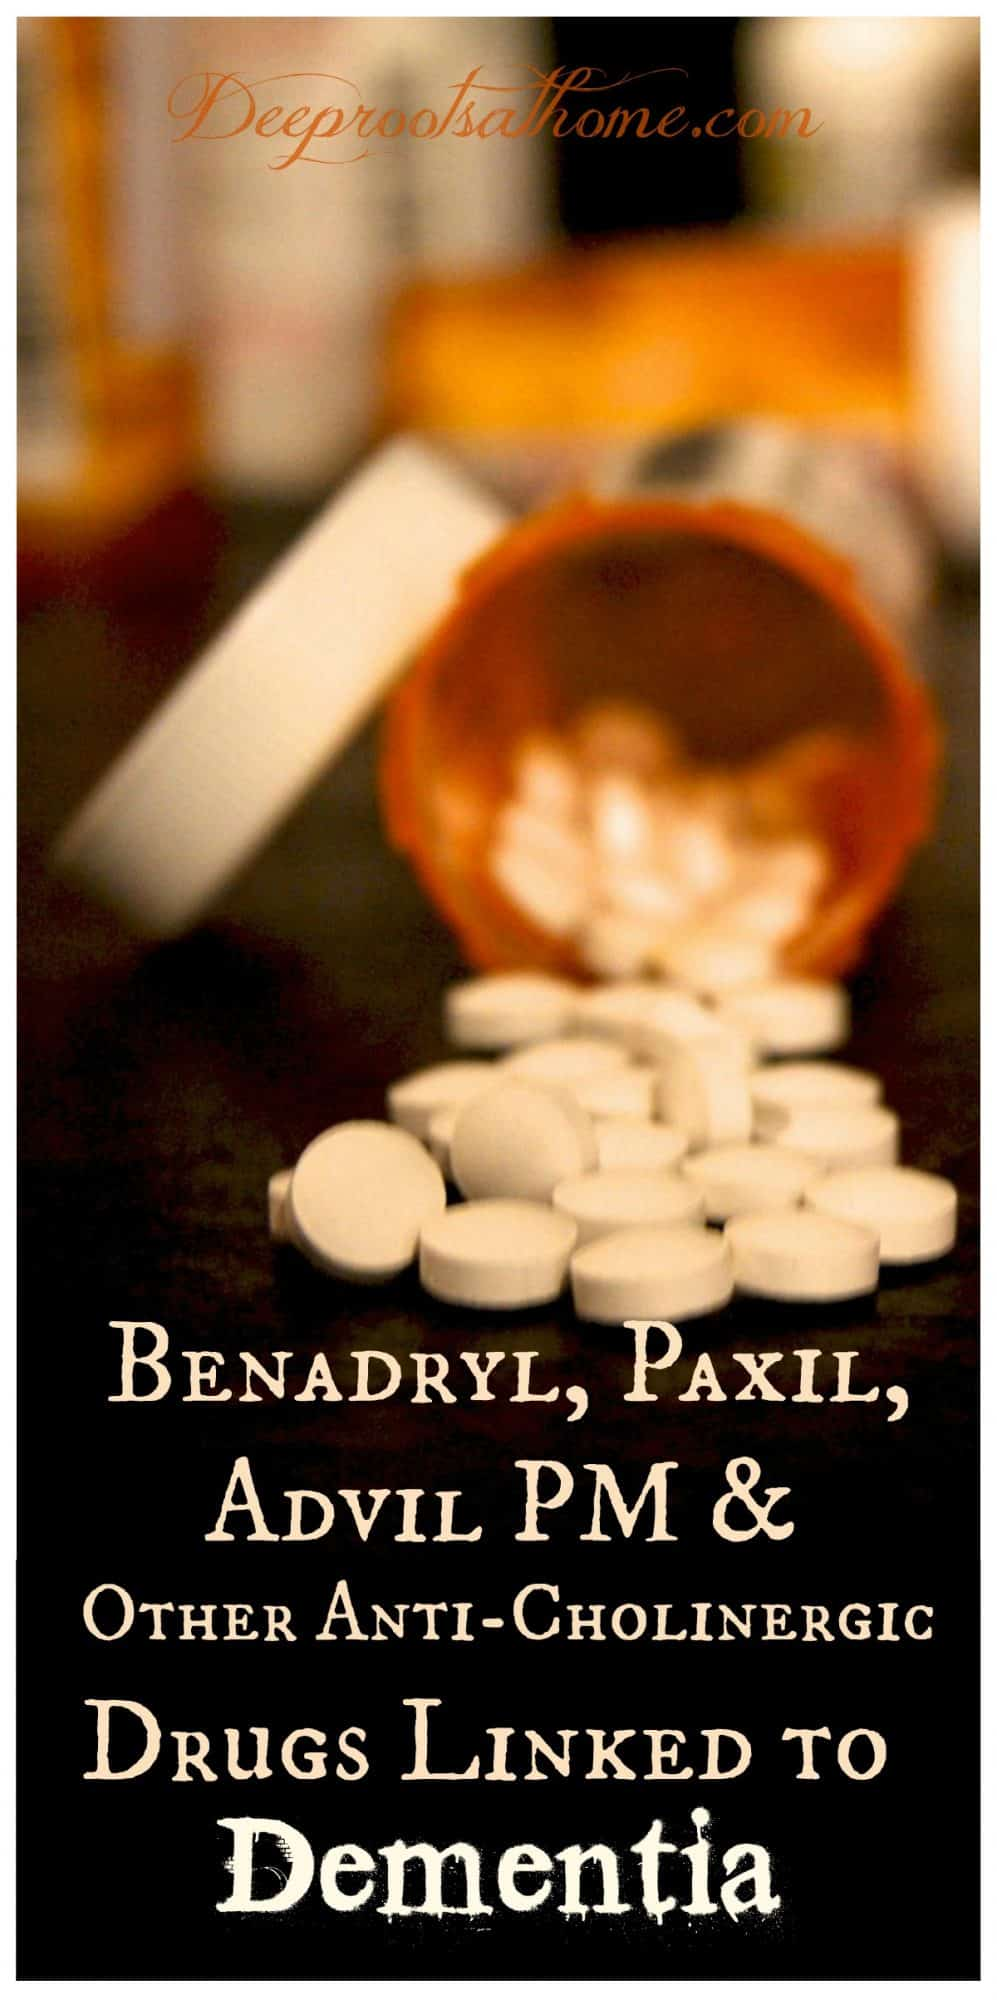 Benadryl, Paxil, Advil PM & Other Drugs Linked to Dementia, popular allergy drugs, insomnia drugs, health risks, research, brain imaging technology, anticholinergic drugs, brain atrophy, Benadryl, Demerol, Dramamine, Paxil, Advil PM, Unison, cognitive decline, sleep aids, hay fever medications, increased risk of dementia, asthma drugs, Atrovent, Spiriva, solifenacin-containing drugs, Vesicare, prescription, OTC, over the counter, natural remedies, essential oils, peppermint oil, basil oil, eucalyptus oil, relief for allergies, colds, cough, sinusitis, asthma, bronchitis, reduce inflammation, diffuse, carrier oil, melatonin. passionflower, valerian, calcium/magnesium, Vit B12, relaxation, lavender